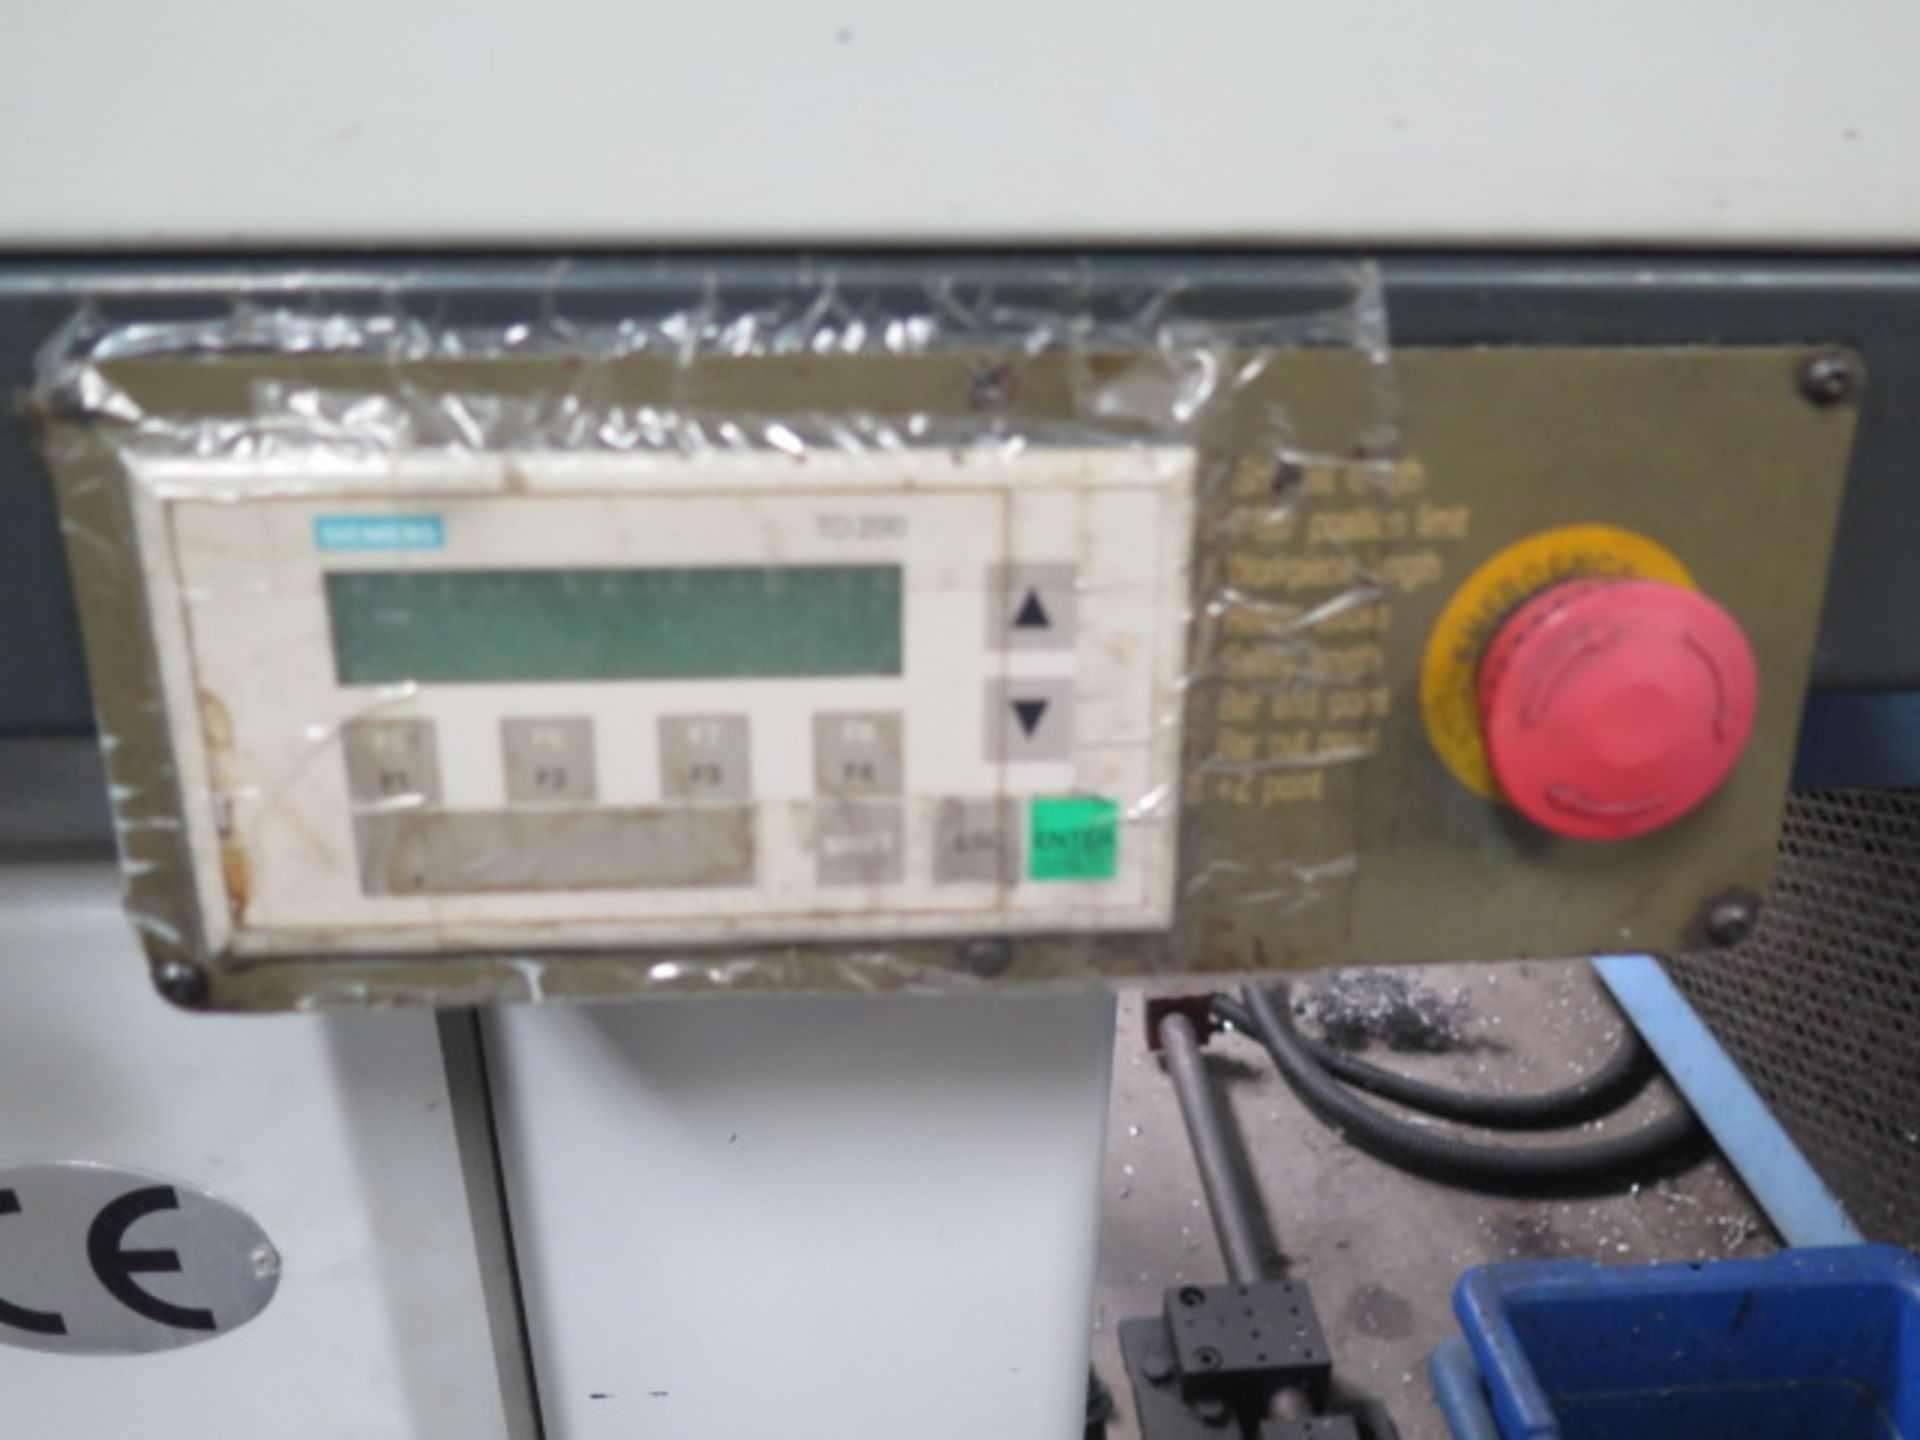 LNS Eco Load Automatic Bar Loader / Feeder (SOLD AS-IS - NO WARRANTY) - Image 4 of 5